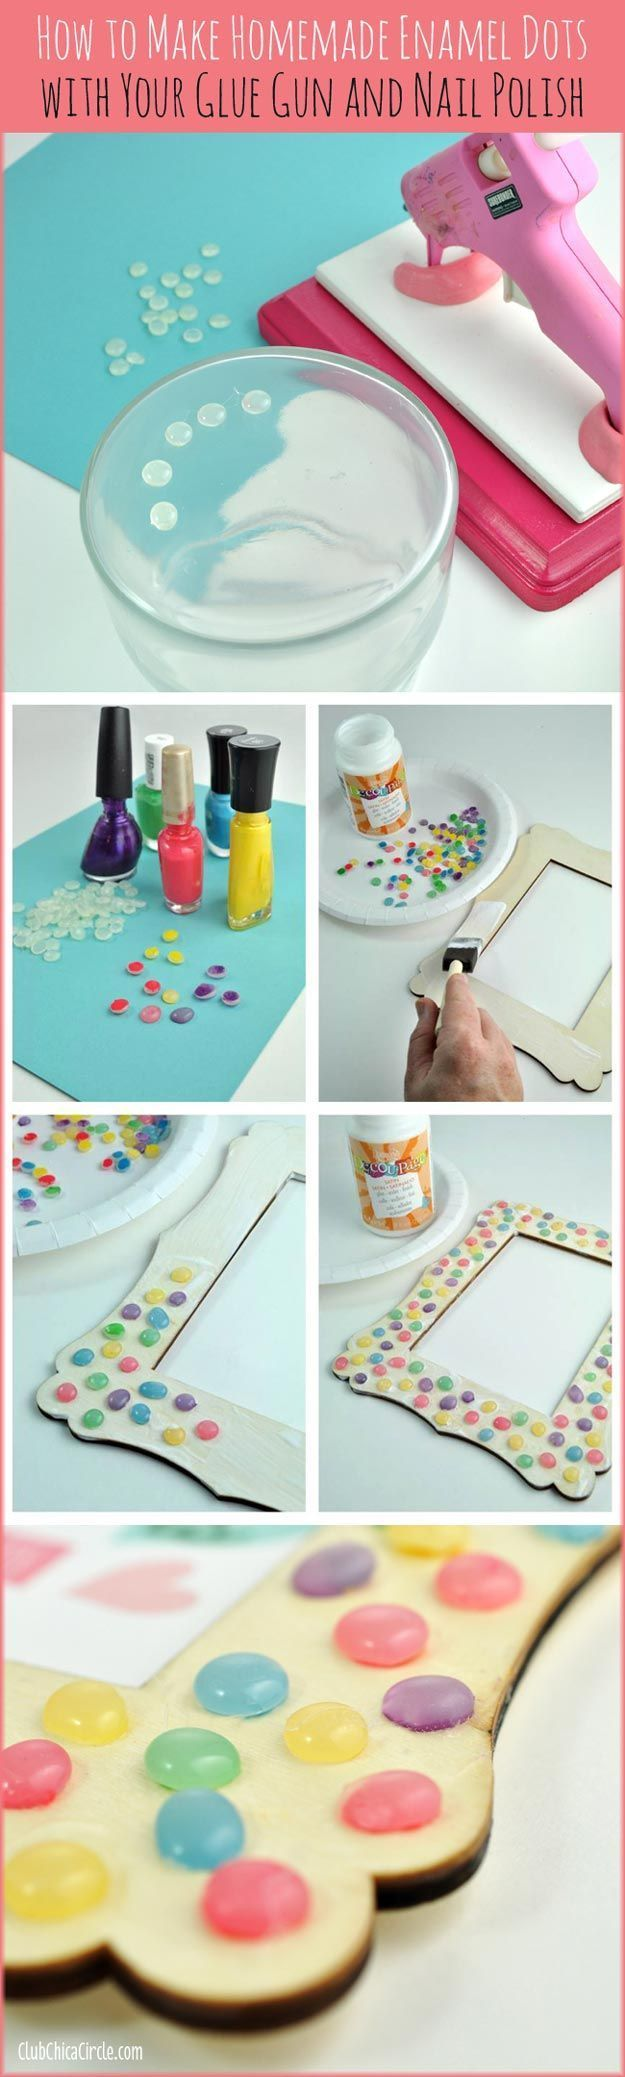 17 Best Images About Diy For Teens On Pinterest Diy